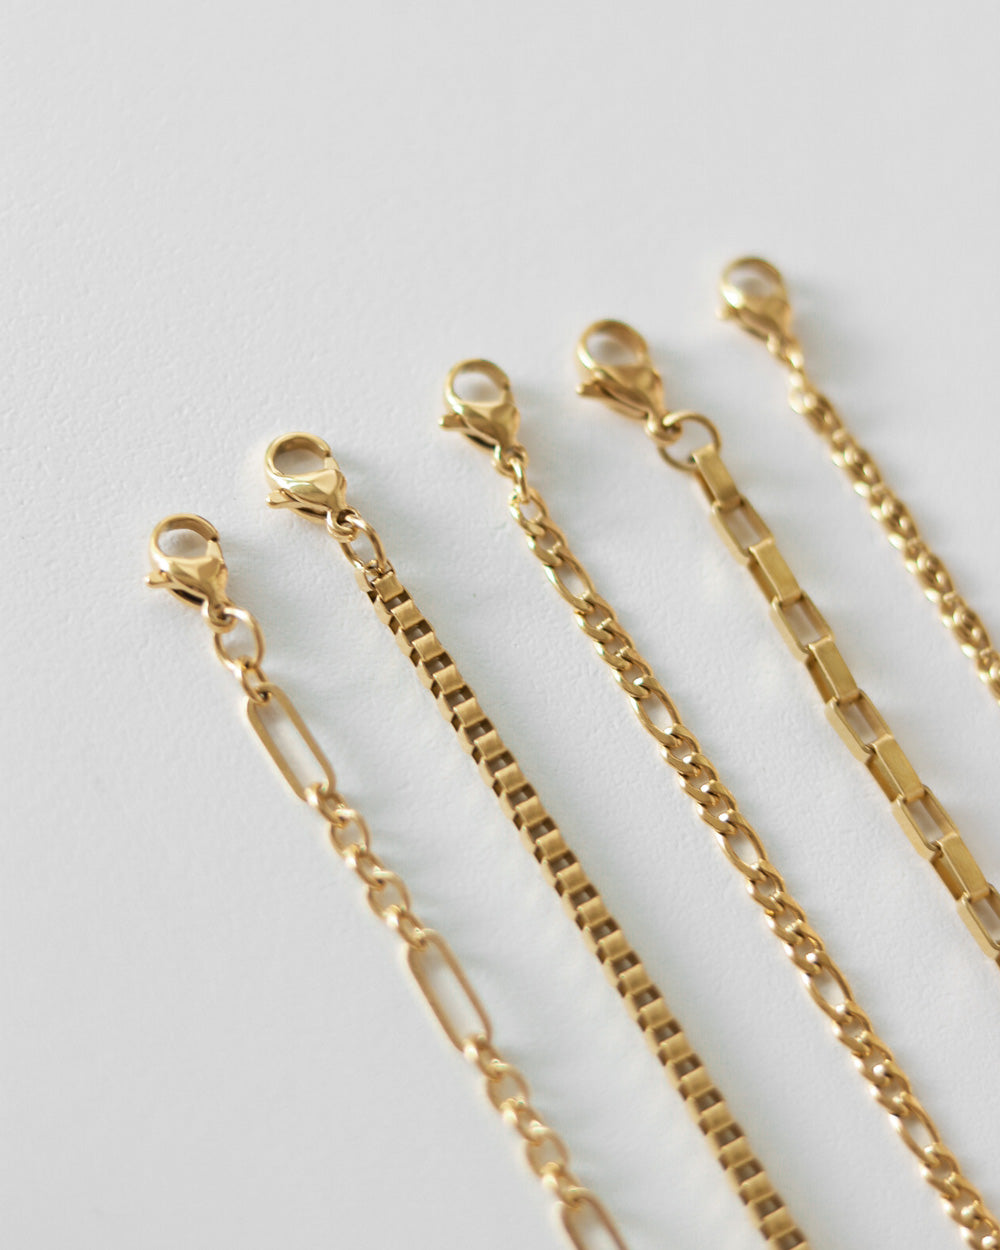 Gold chain bracelets by The Hexad Jewelry